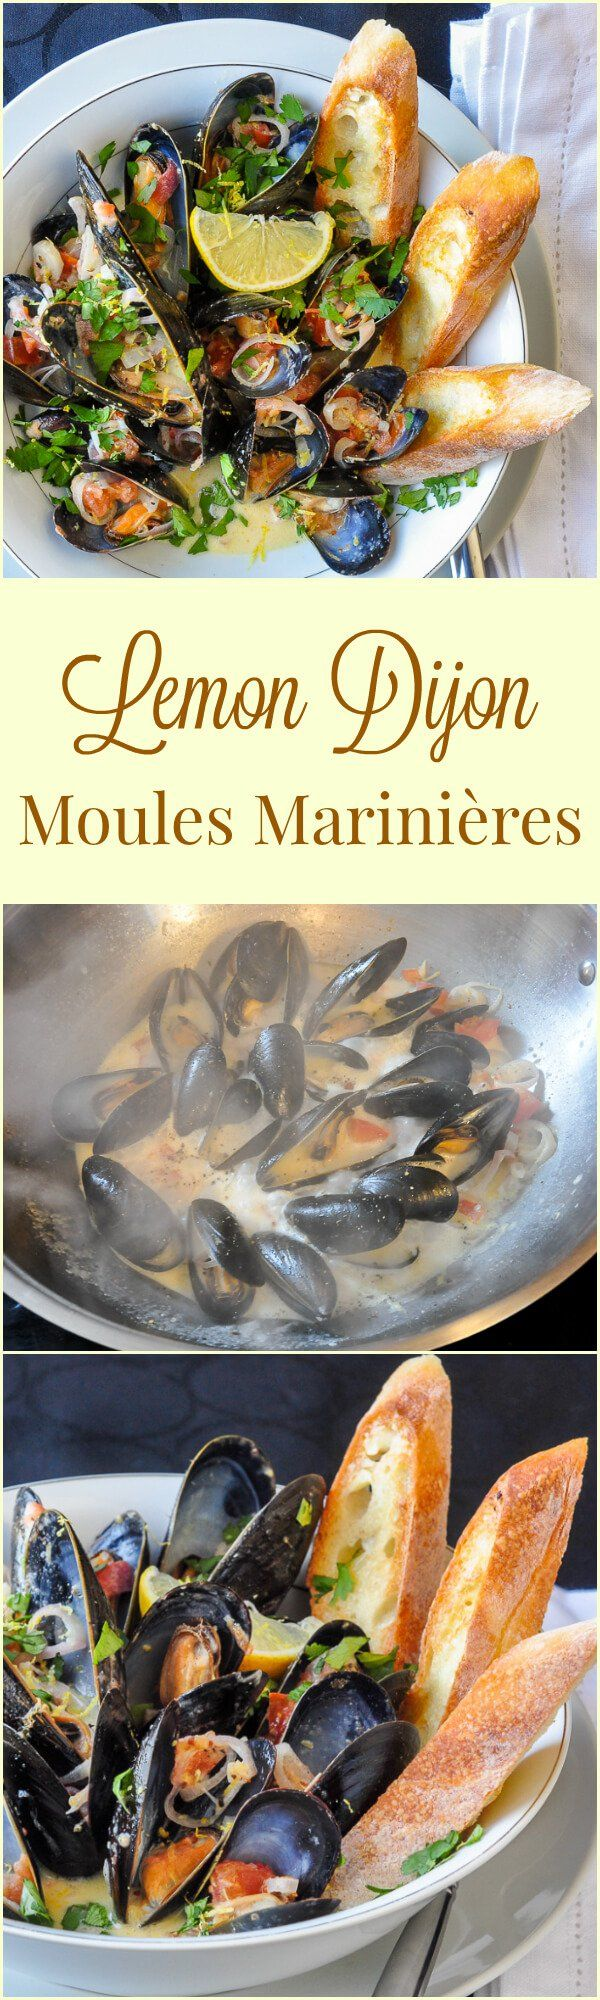 Lemon Dijon Moules Marinières - Lemon Dijon Steamed Mussels, an incredible appetizer course or spectacular lunch. Add some linguine for an amazing pasta version too.